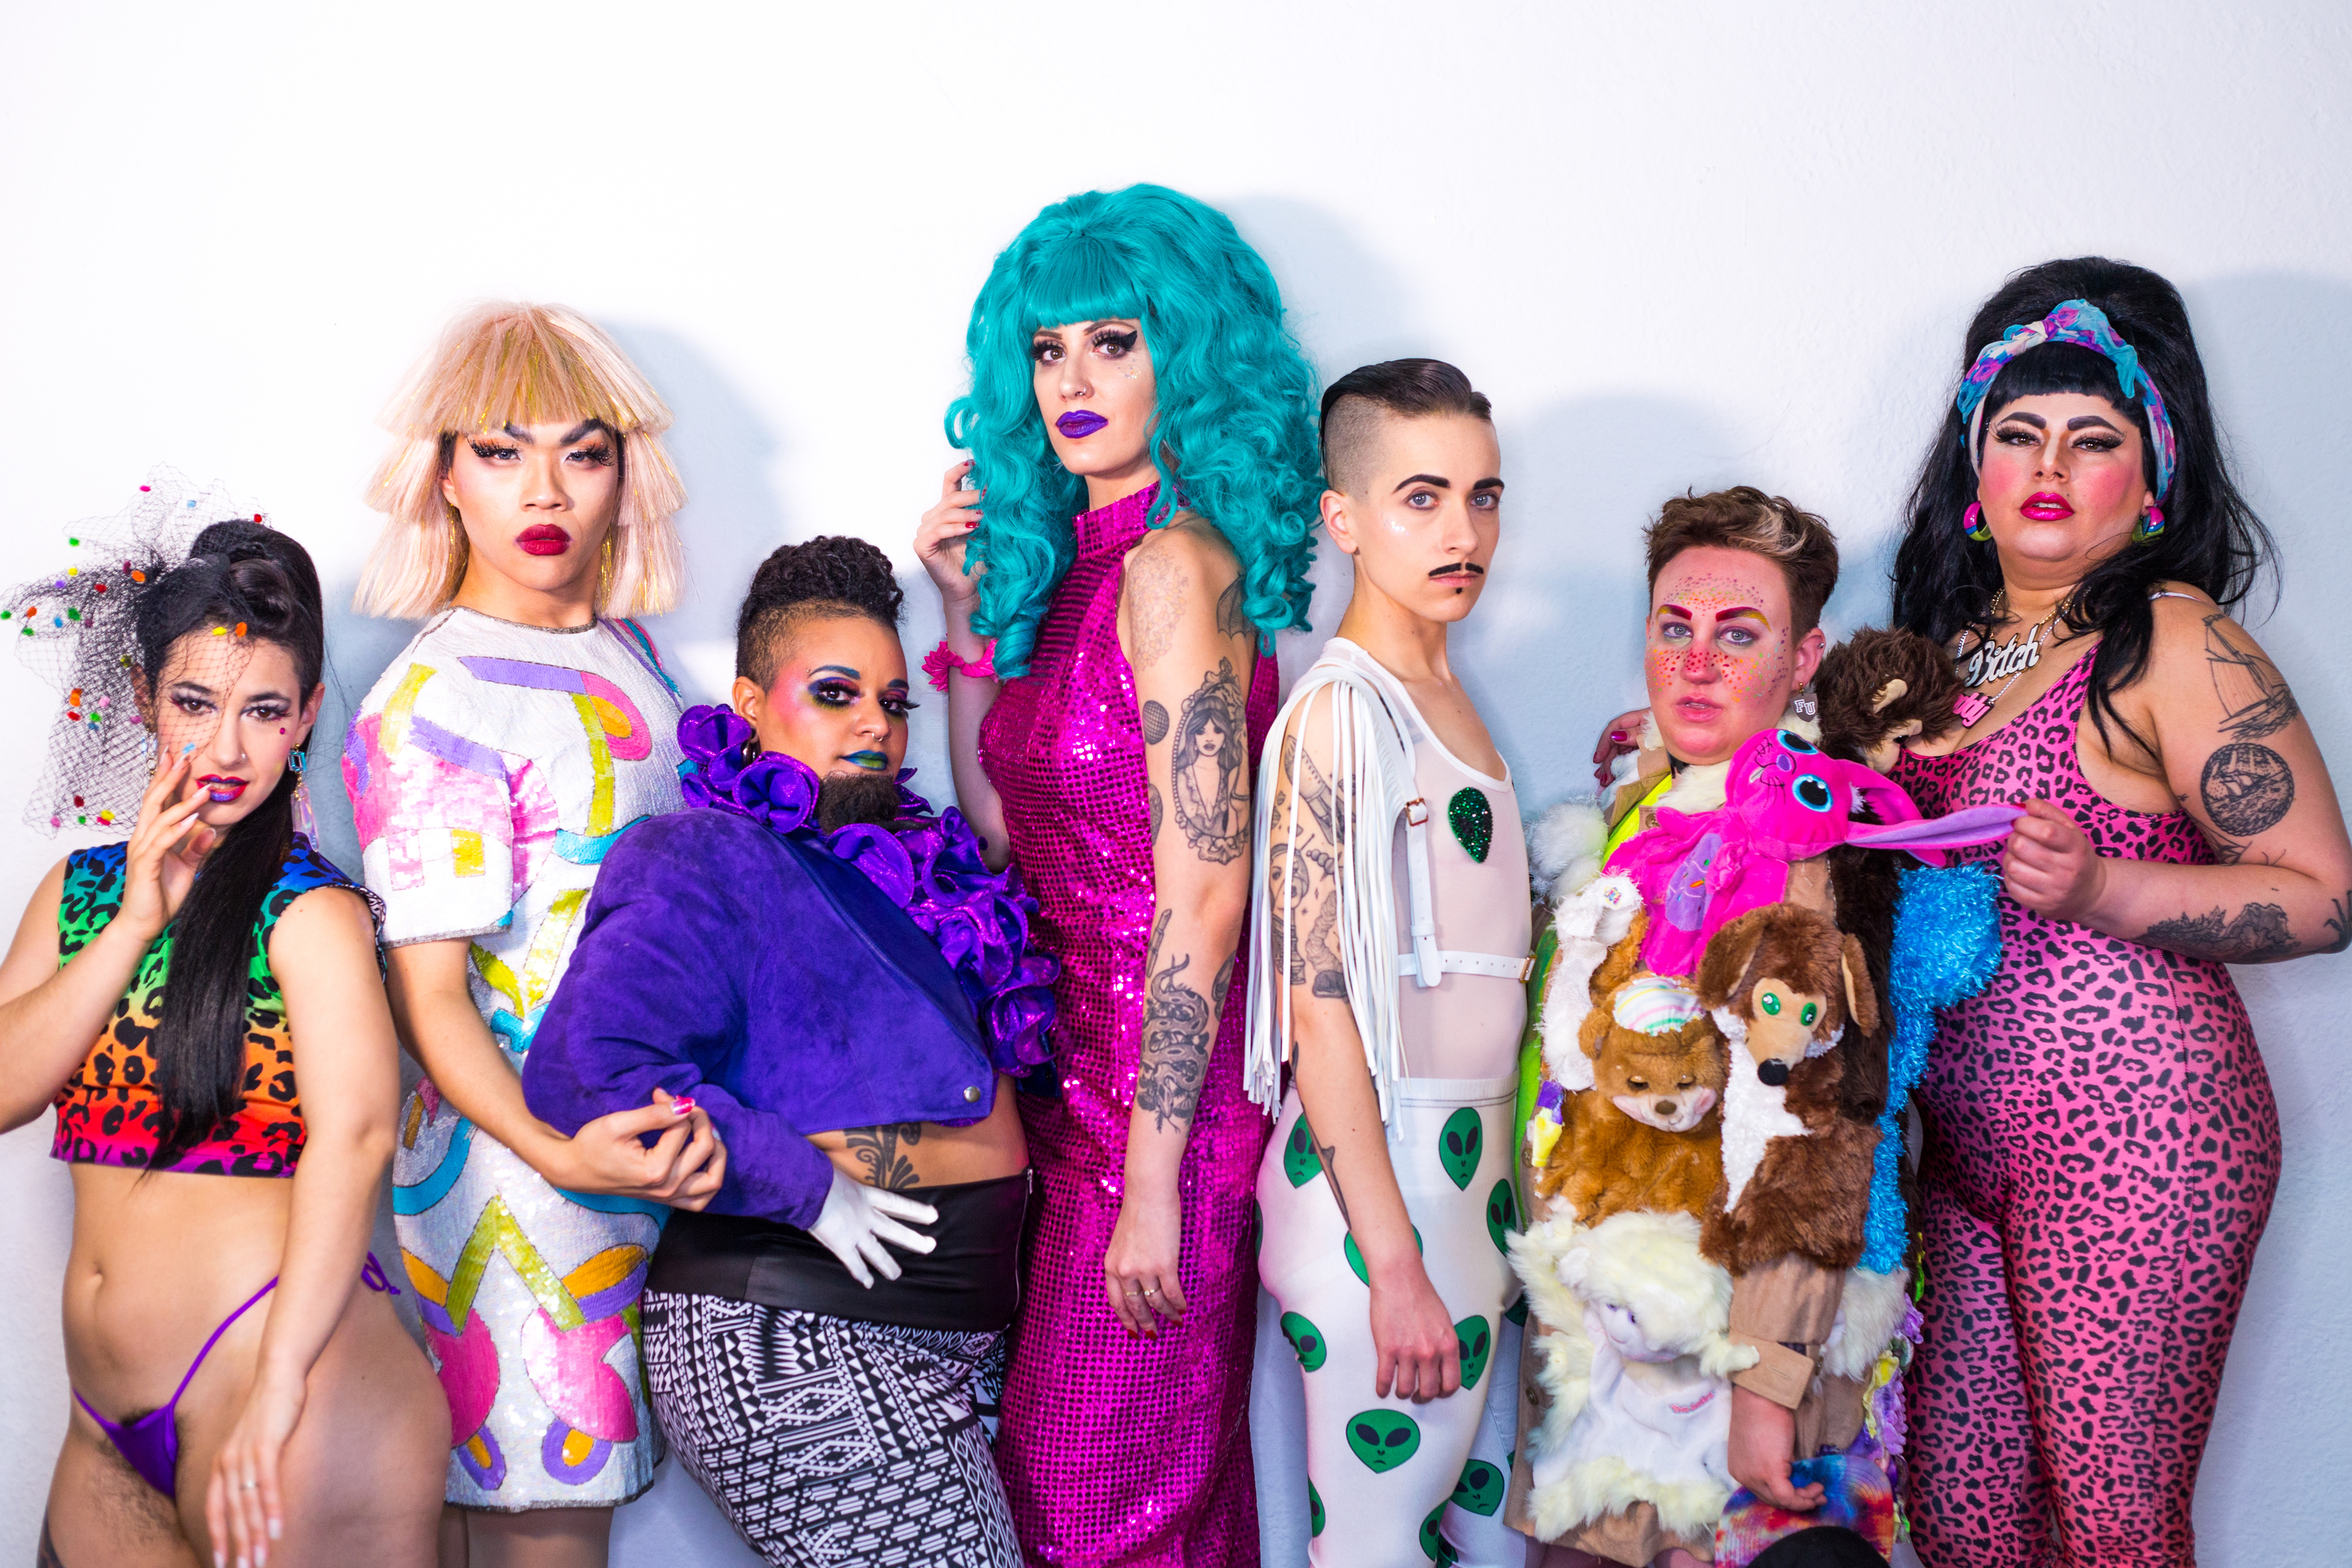 The best New York City drag shows and events